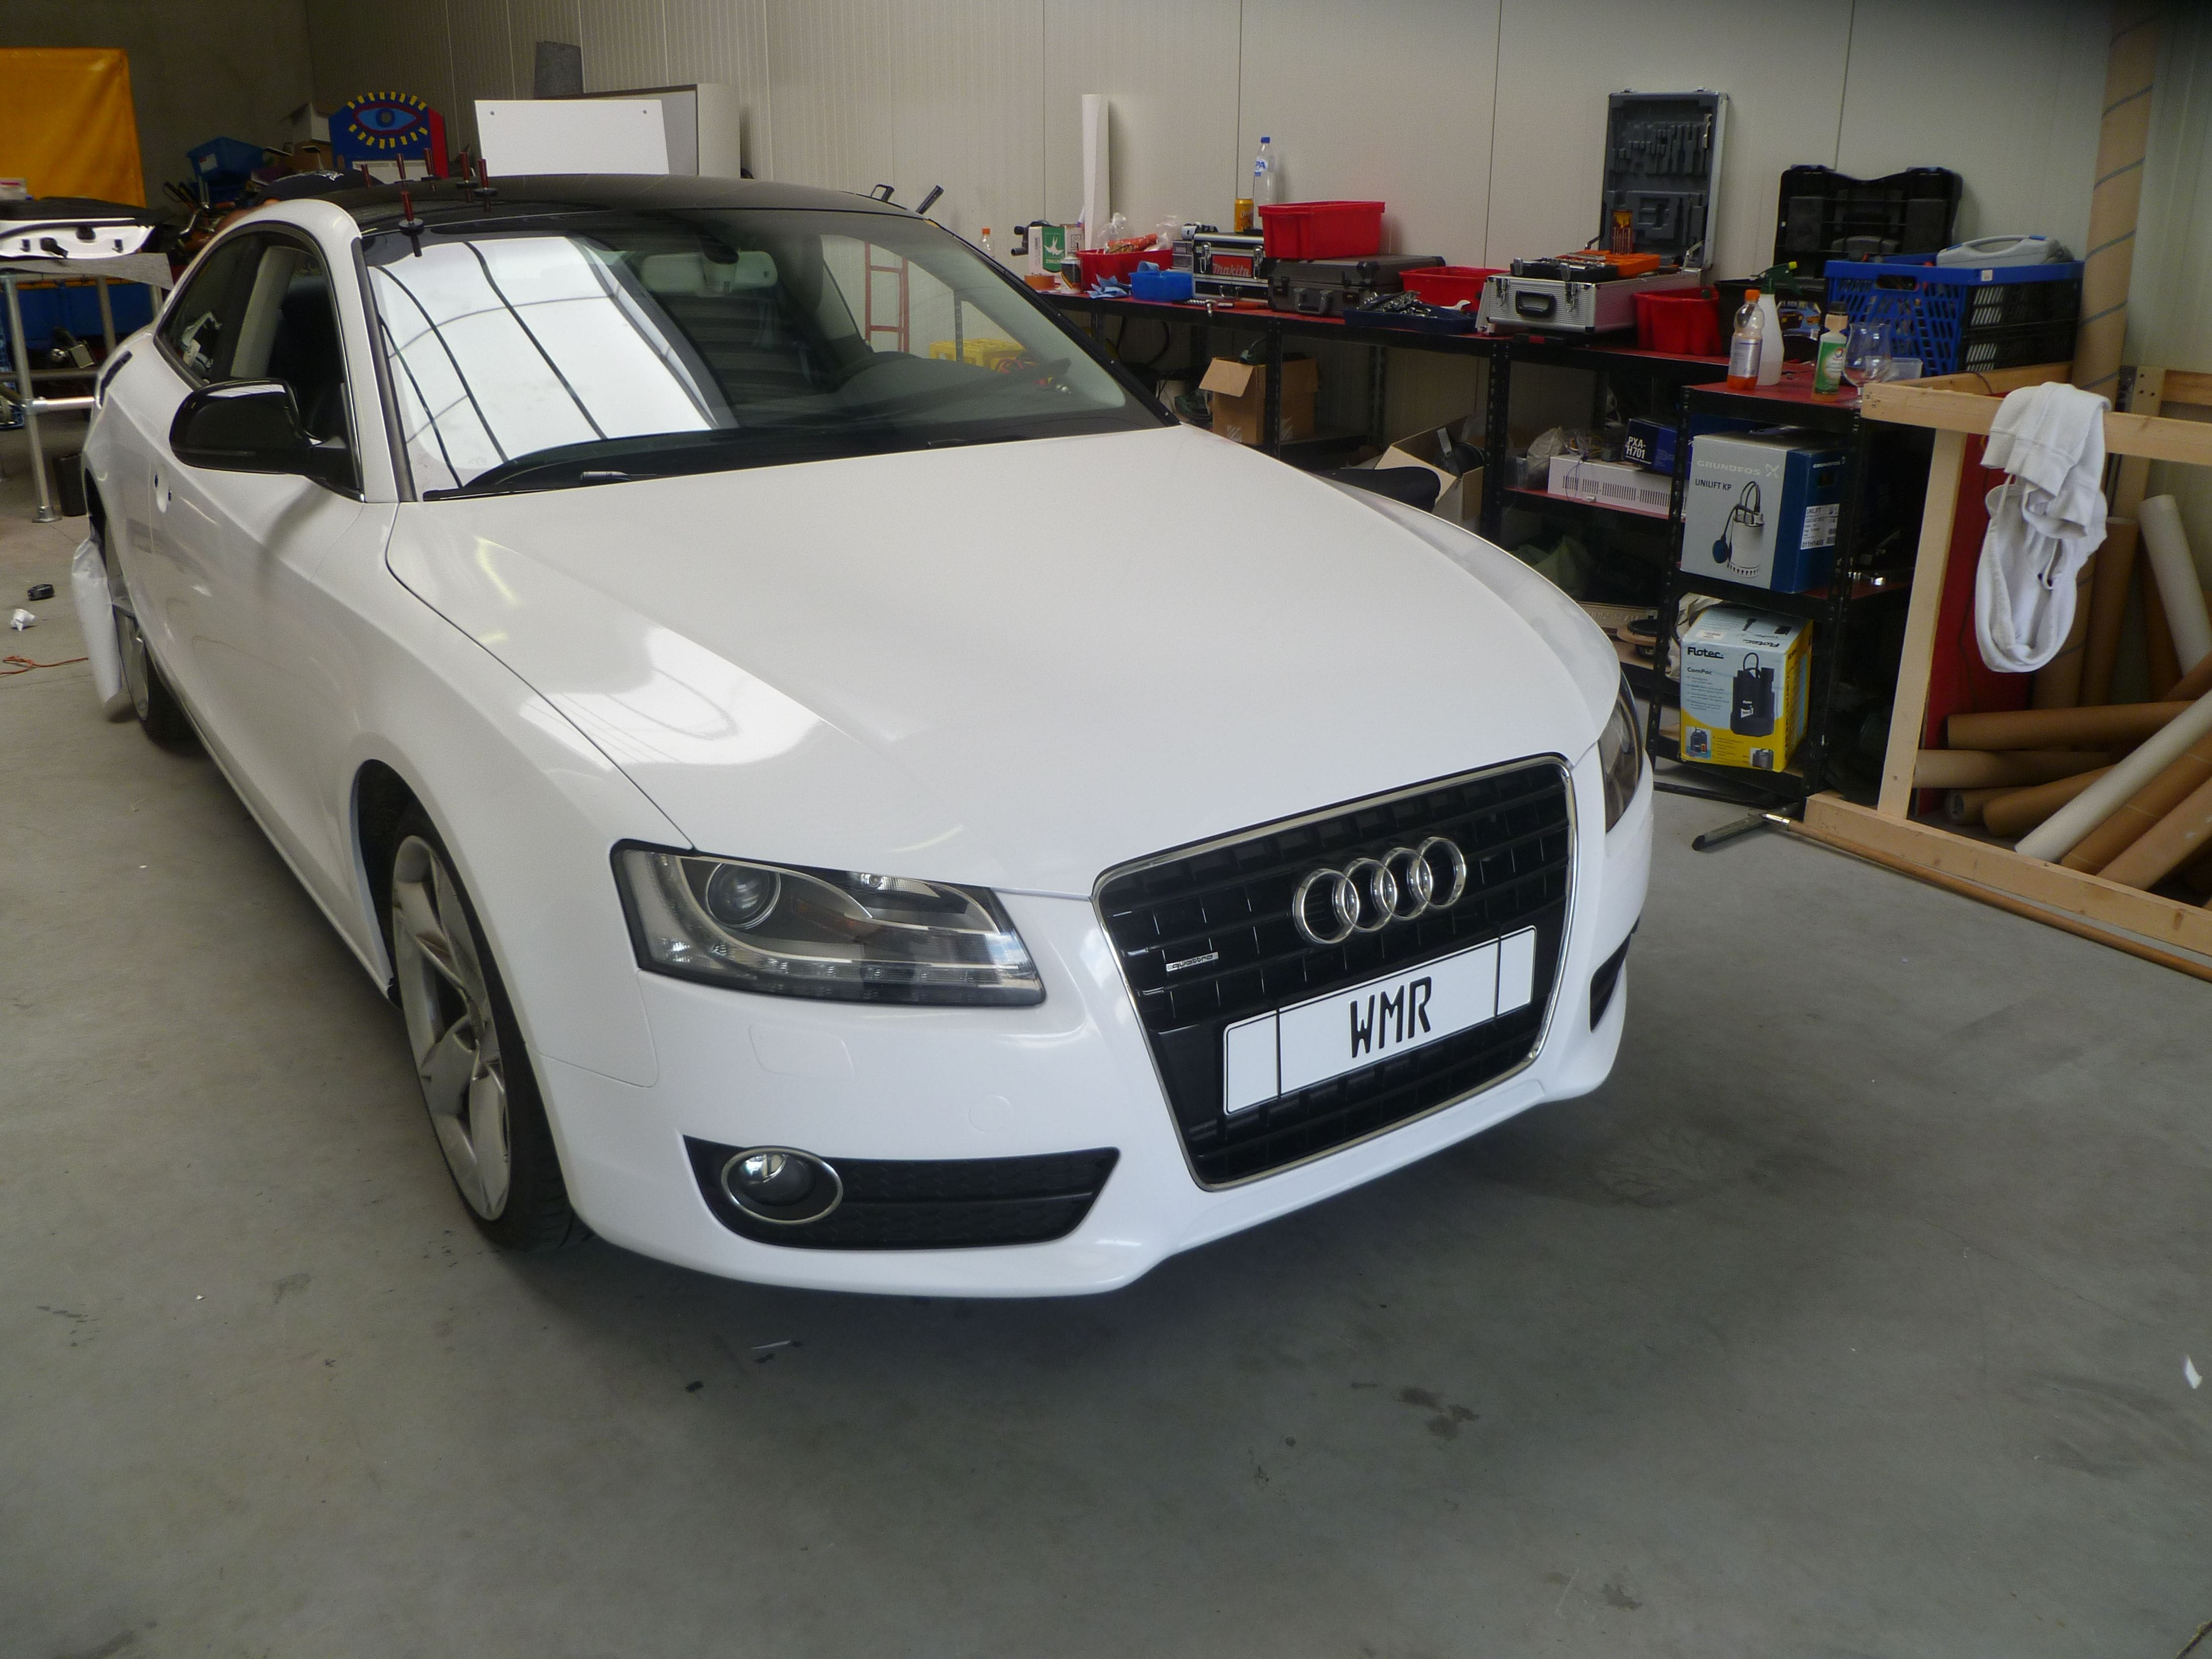 Audi A5 coupe met Metallic Witte Wrap, Carwrapping door Wrapmyride.nu Foto-nr:4721, ©2020